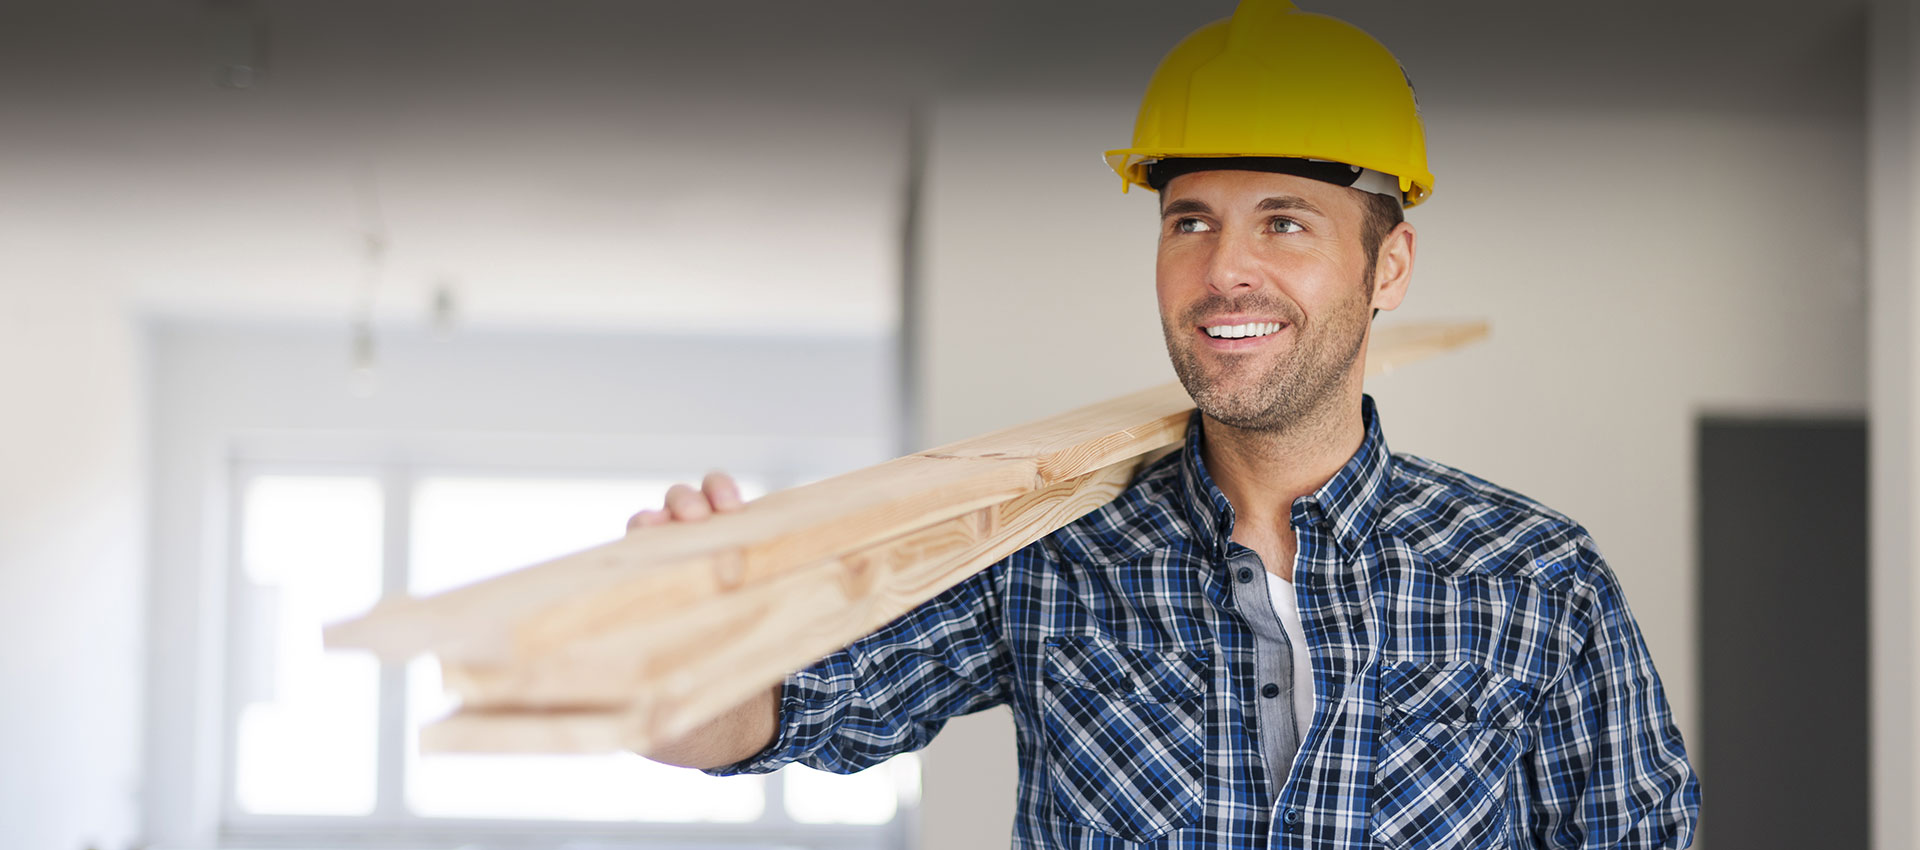 Home_slider_image_2_Construction_Worker